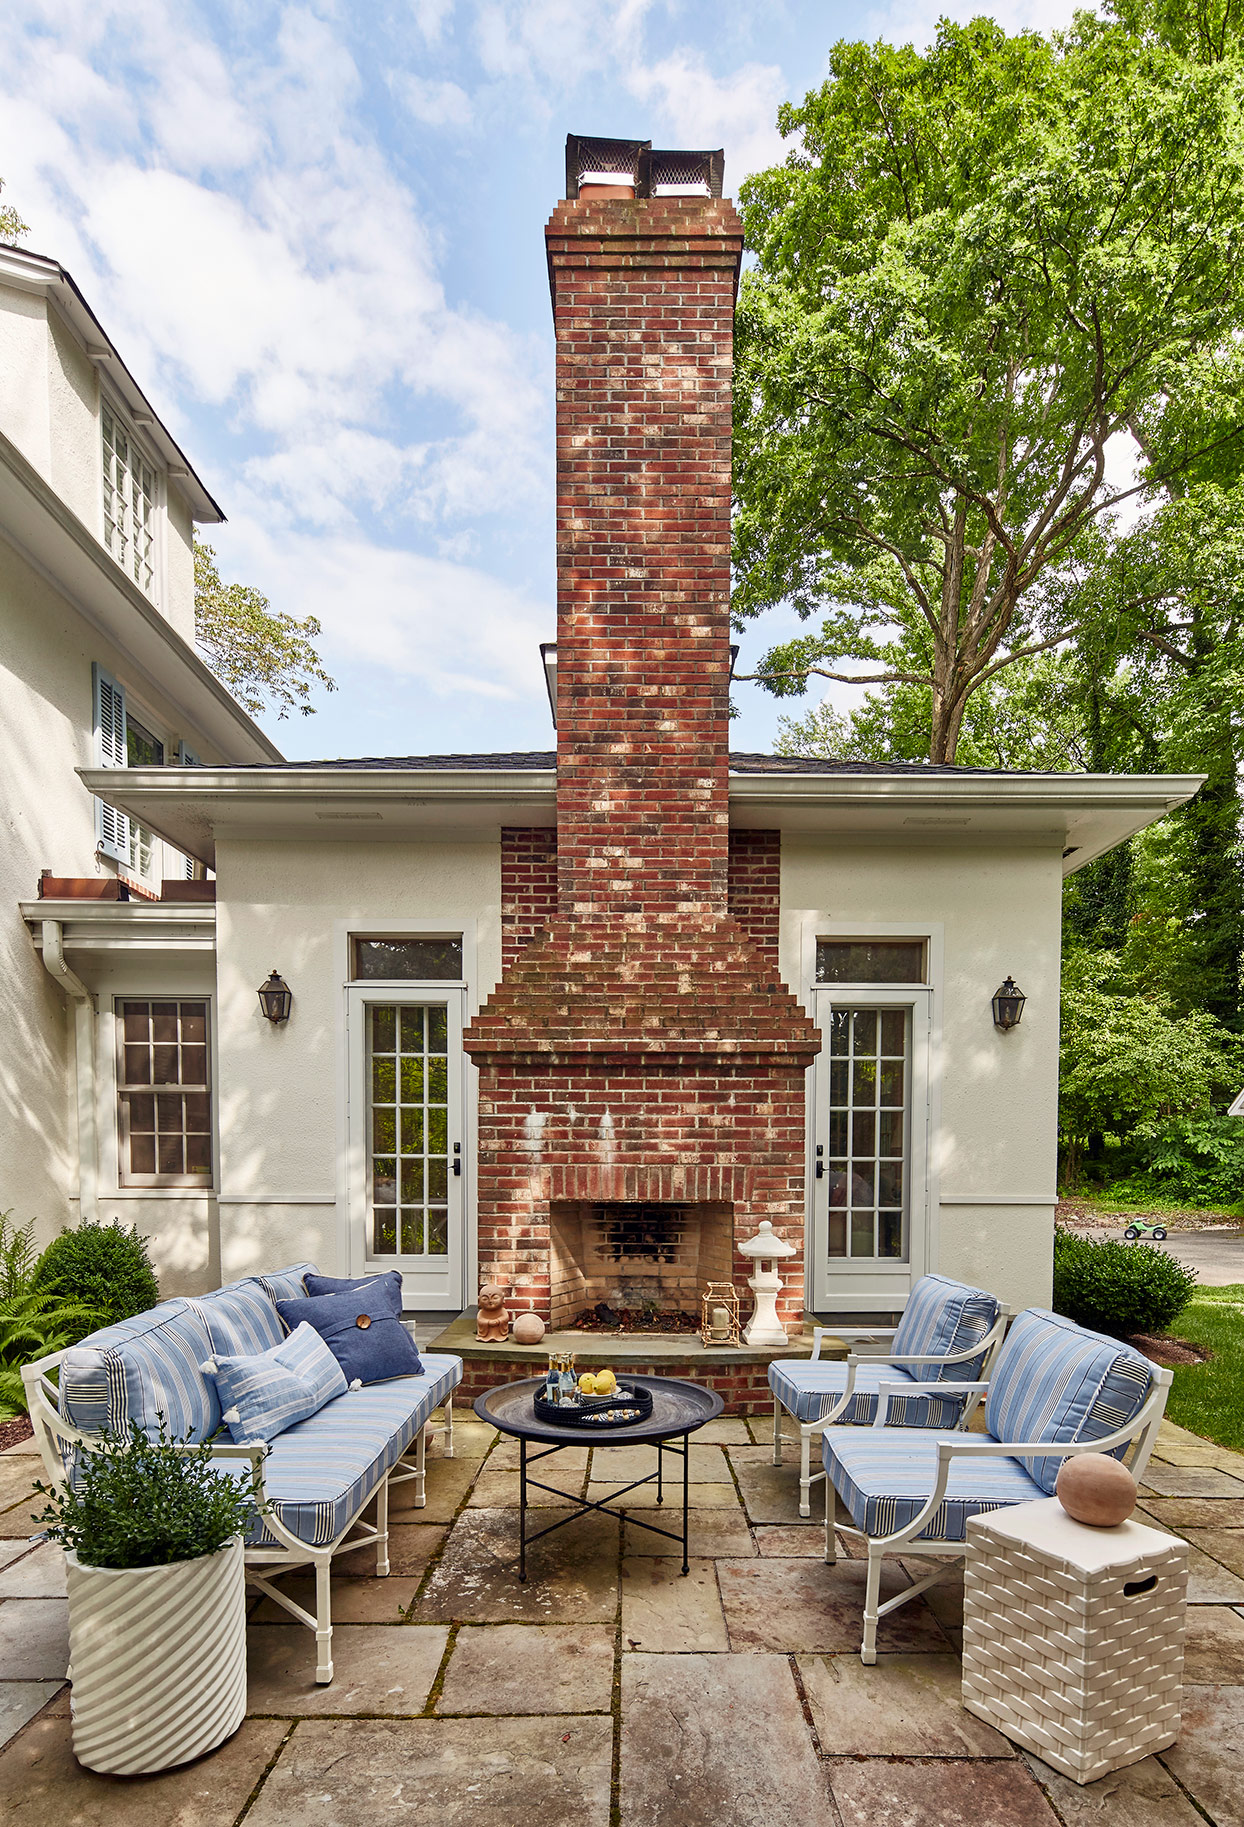 Outdoor seating with chimney